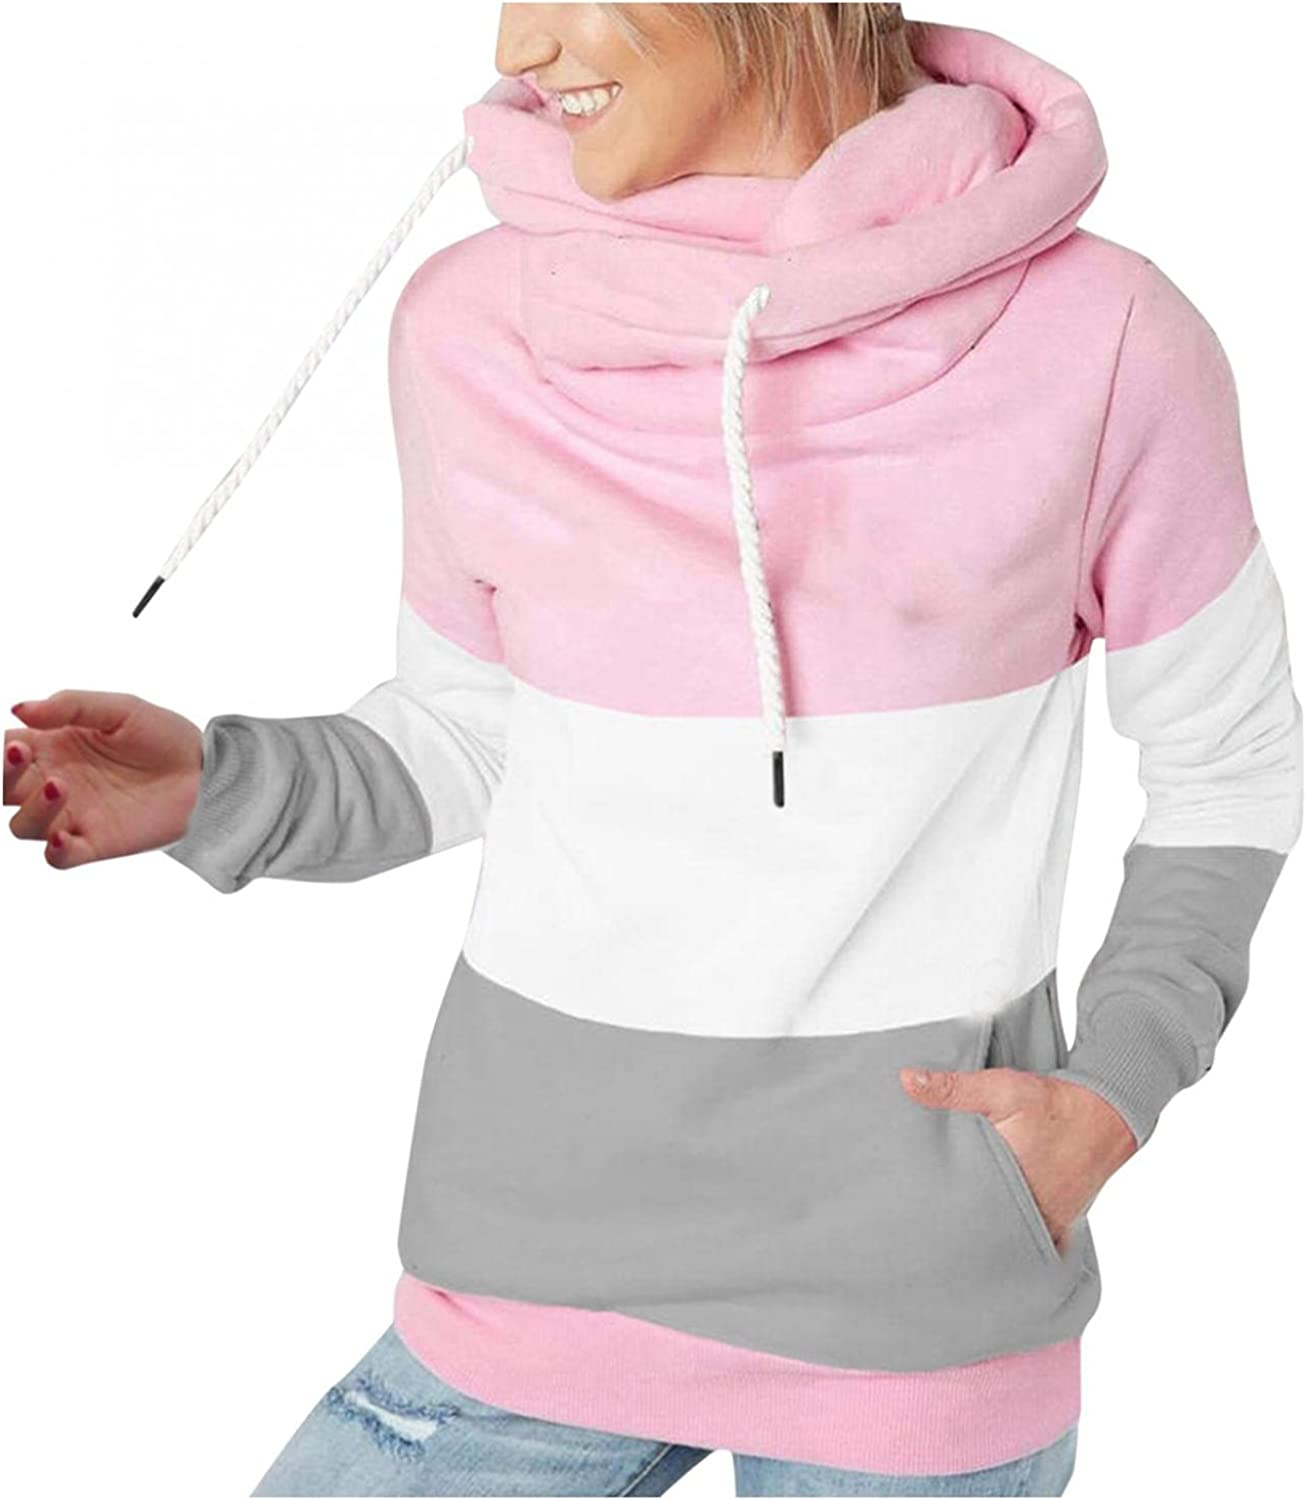 UOCUFY Hoodies for Women Pullover,Causal Drawstring Turtleneck Sweatshirts Long Sleeve Color Block Hooded with Pockets